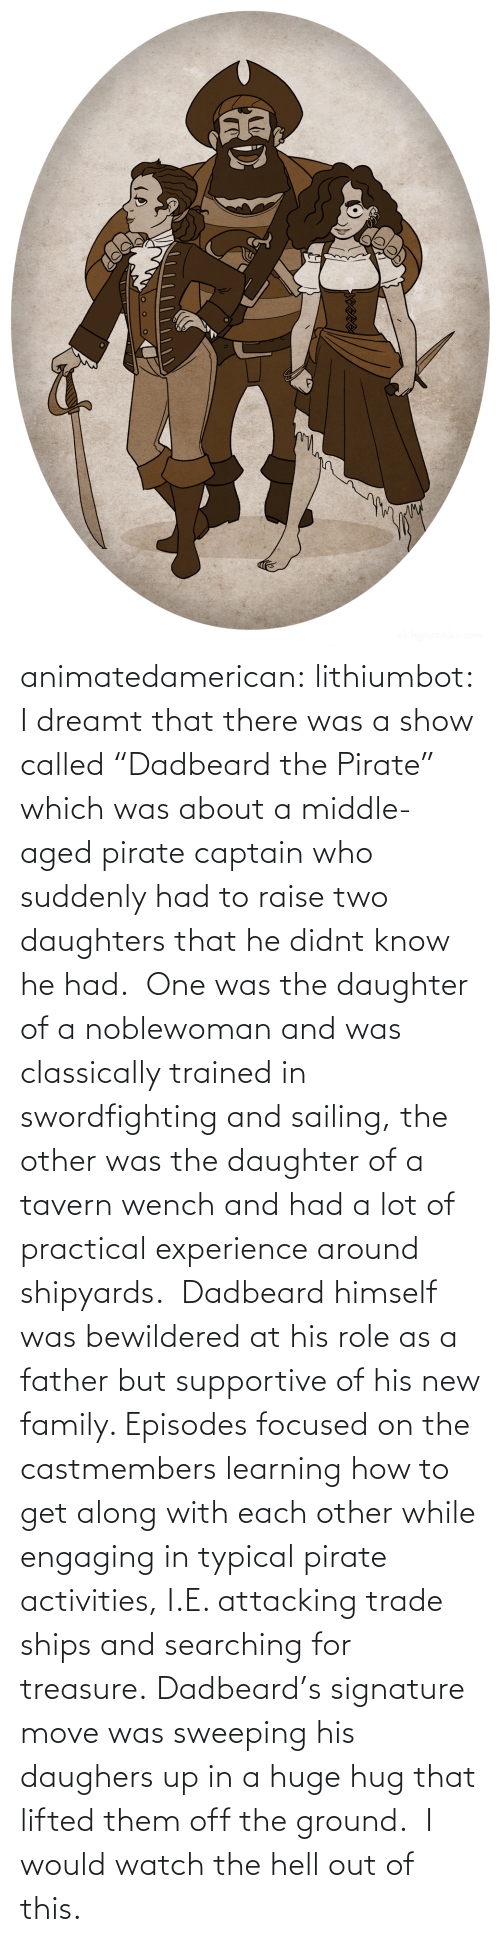 "Didnt: animatedamerican: lithiumbot:  I dreamt that there was a show called ""Dadbeard the Pirate"" which was about a middle-aged pirate captain who suddenly had to raise two daughters that he didnt know he had.  One was the daughter of a noblewoman and was classically trained in swordfighting and sailing, the other was the daughter of a tavern wench and had a lot of practical experience around shipyards.  Dadbeard himself was bewildered at his role as a father but supportive of his new family. Episodes focused on the castmembers learning how to get along with each other while engaging in typical pirate activities, I.E. attacking trade ships and searching for treasure. Dadbeard's signature move was sweeping his daughers up in a huge hug that lifted them off the ground.   I would watch the hell out of this."